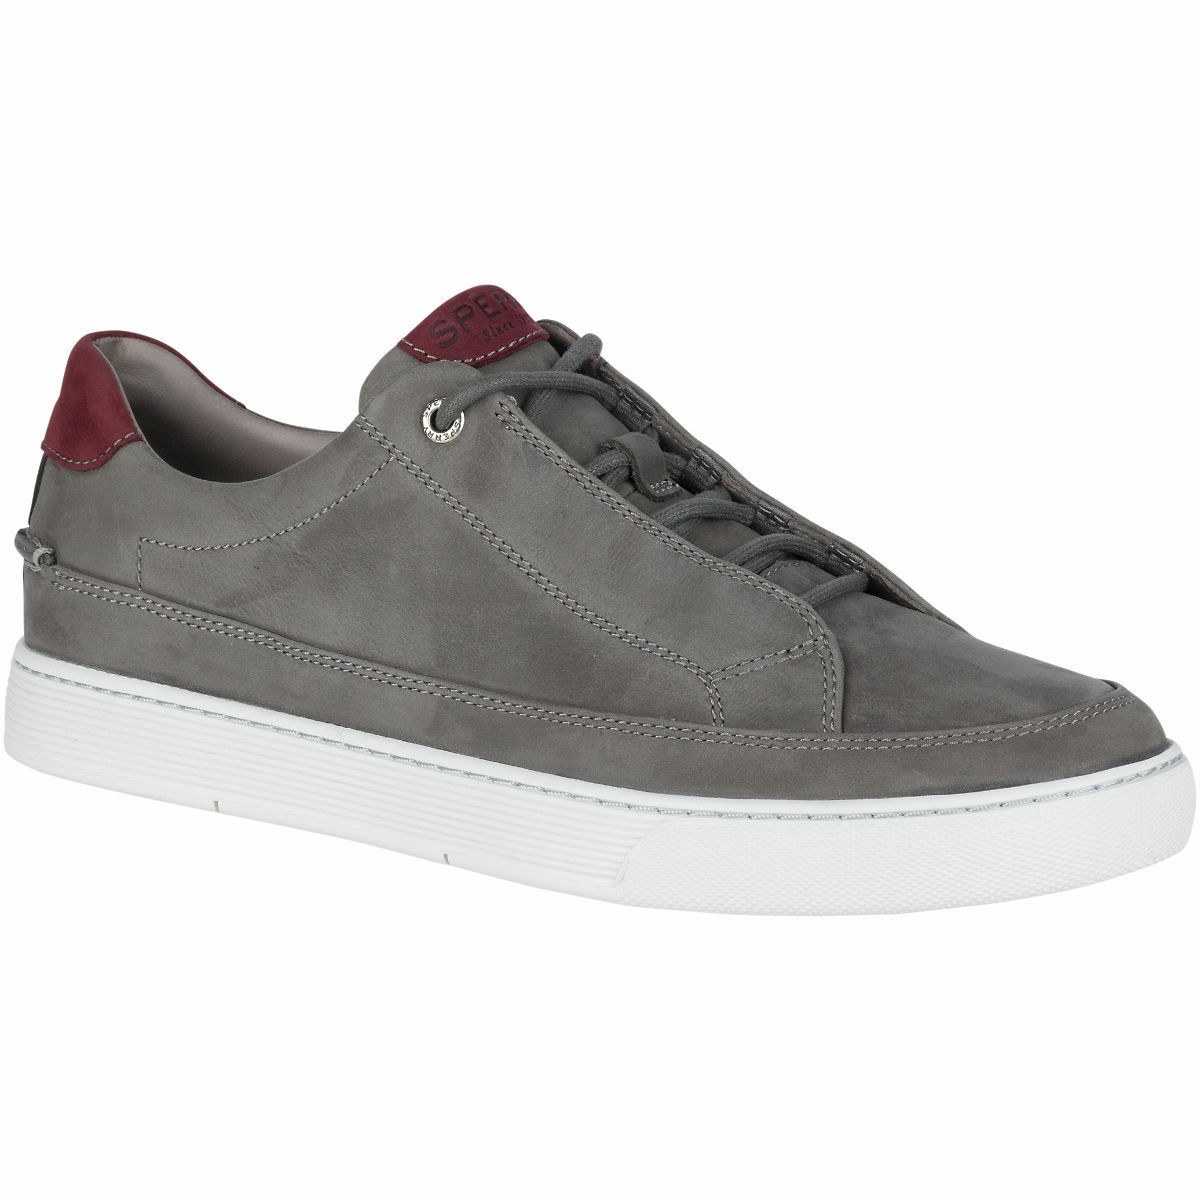 Men's Sperry Top-Sider gold CUP Milbridge Leather Sneaker, STS17488 M Sizes Grey